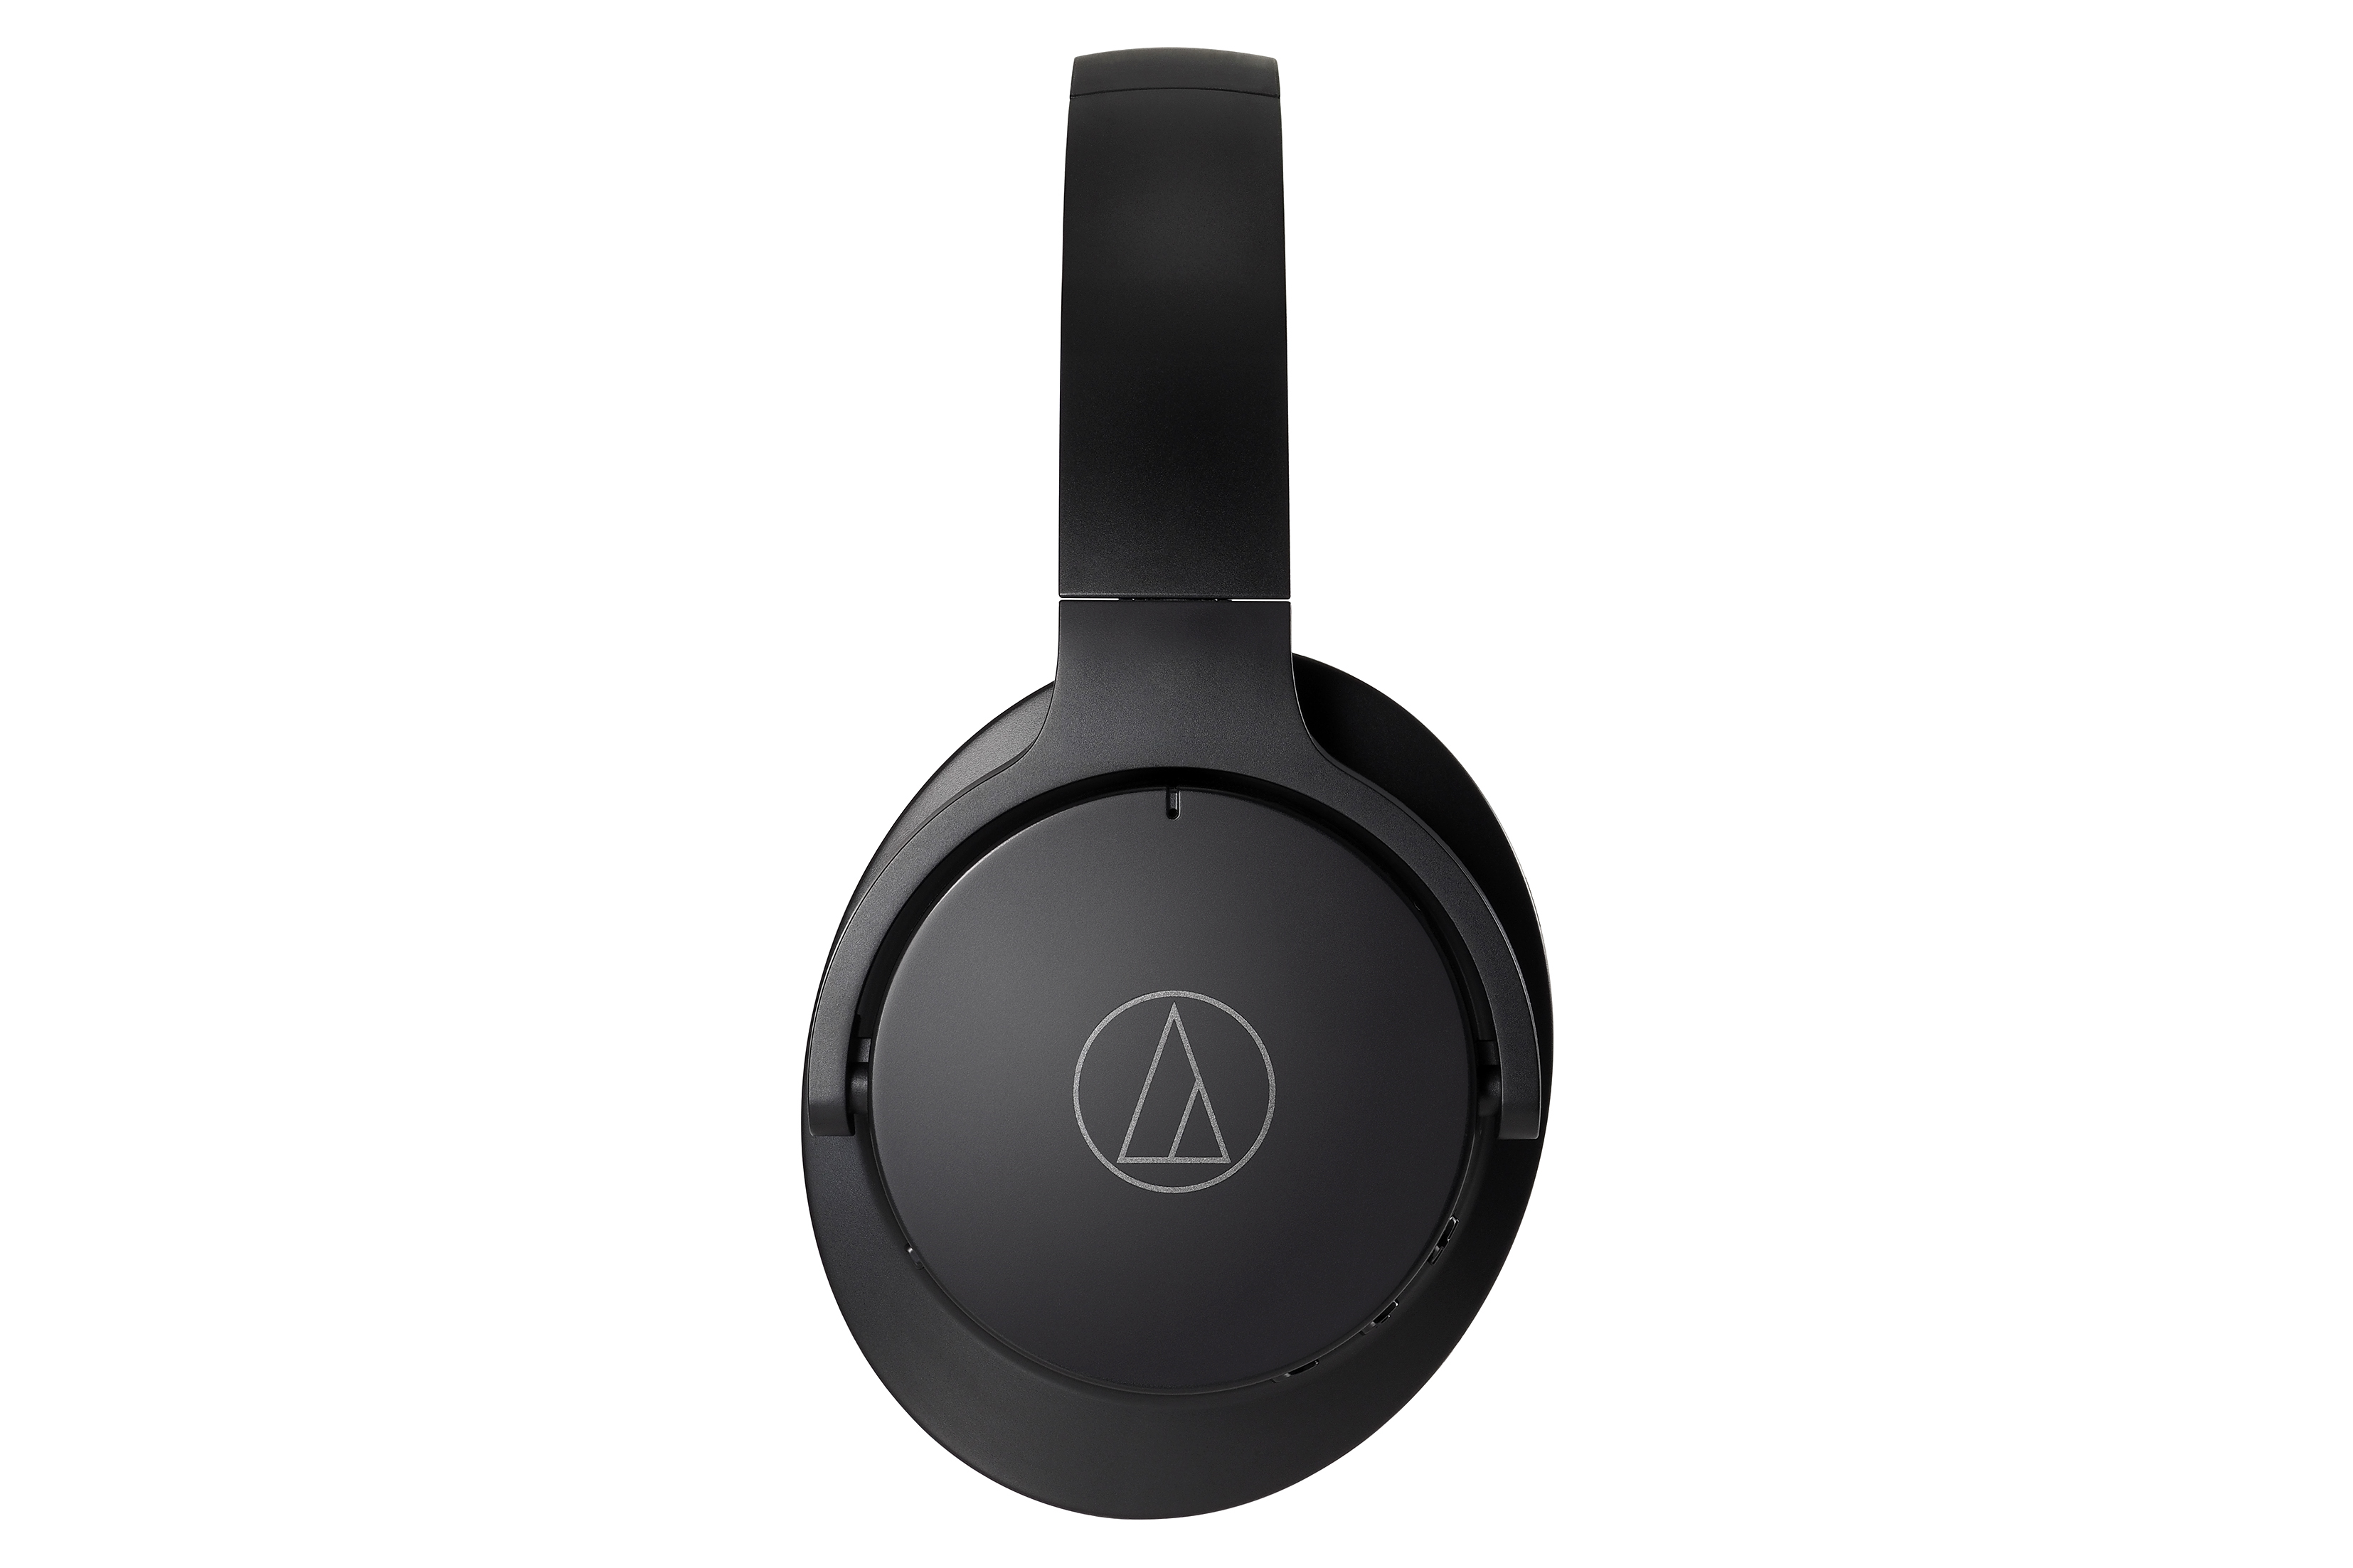 af5ab86dcba Audio-Technica launches a noise-canceling trio to rival Sony and ...